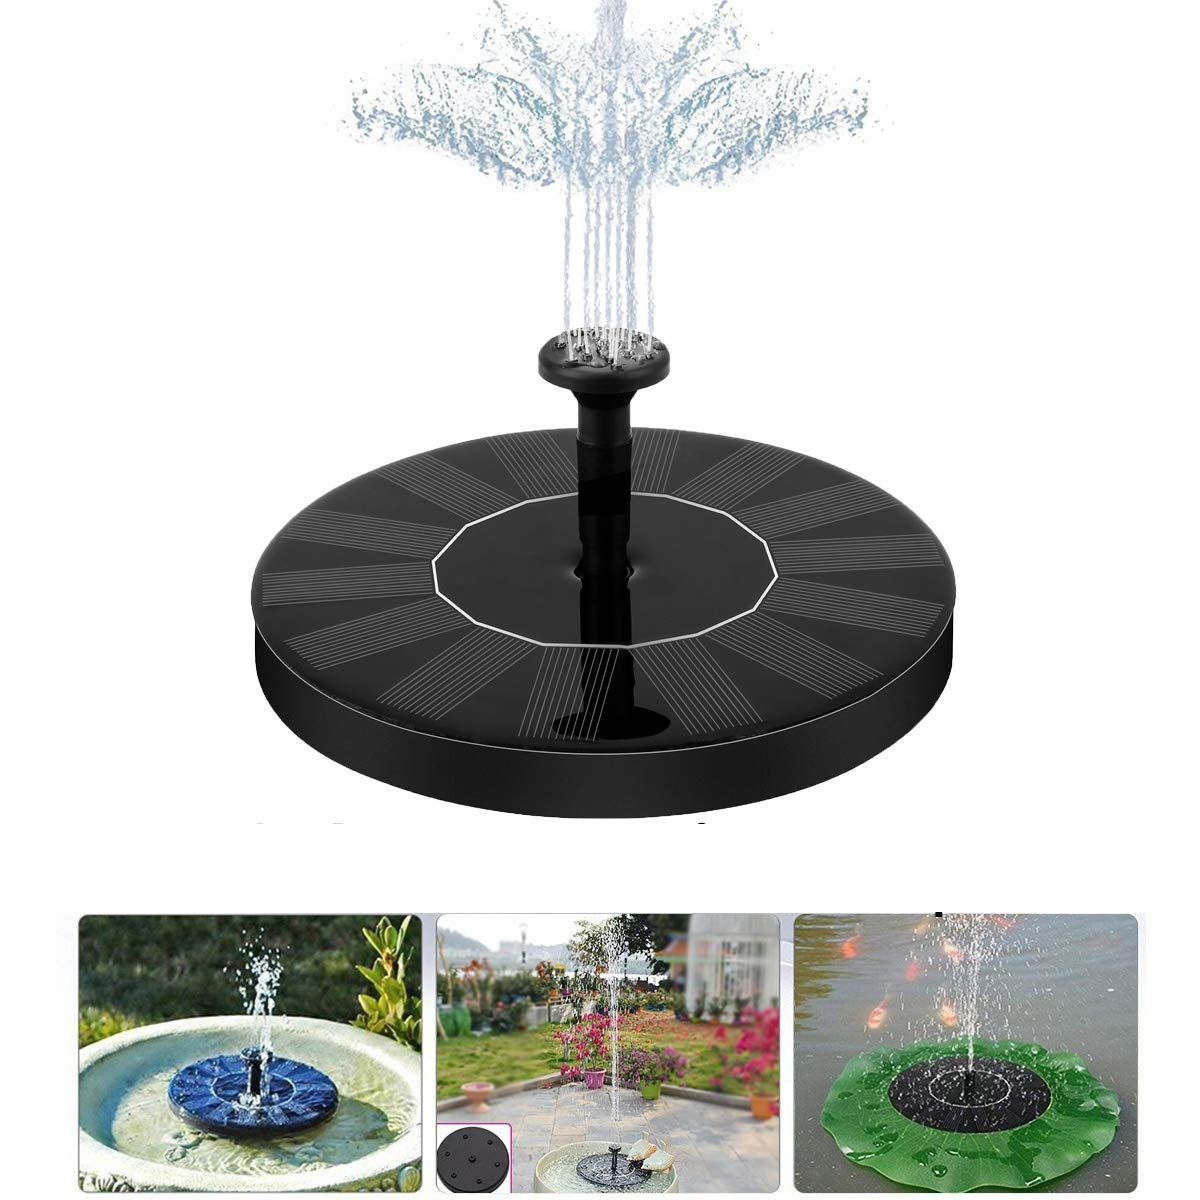 Solar Fountain Pump Solar Powered Fountain Pump for Bird Bath Free Standing Floating Fountain Pump Kit for Garden Patio Lawn Pool Decoration